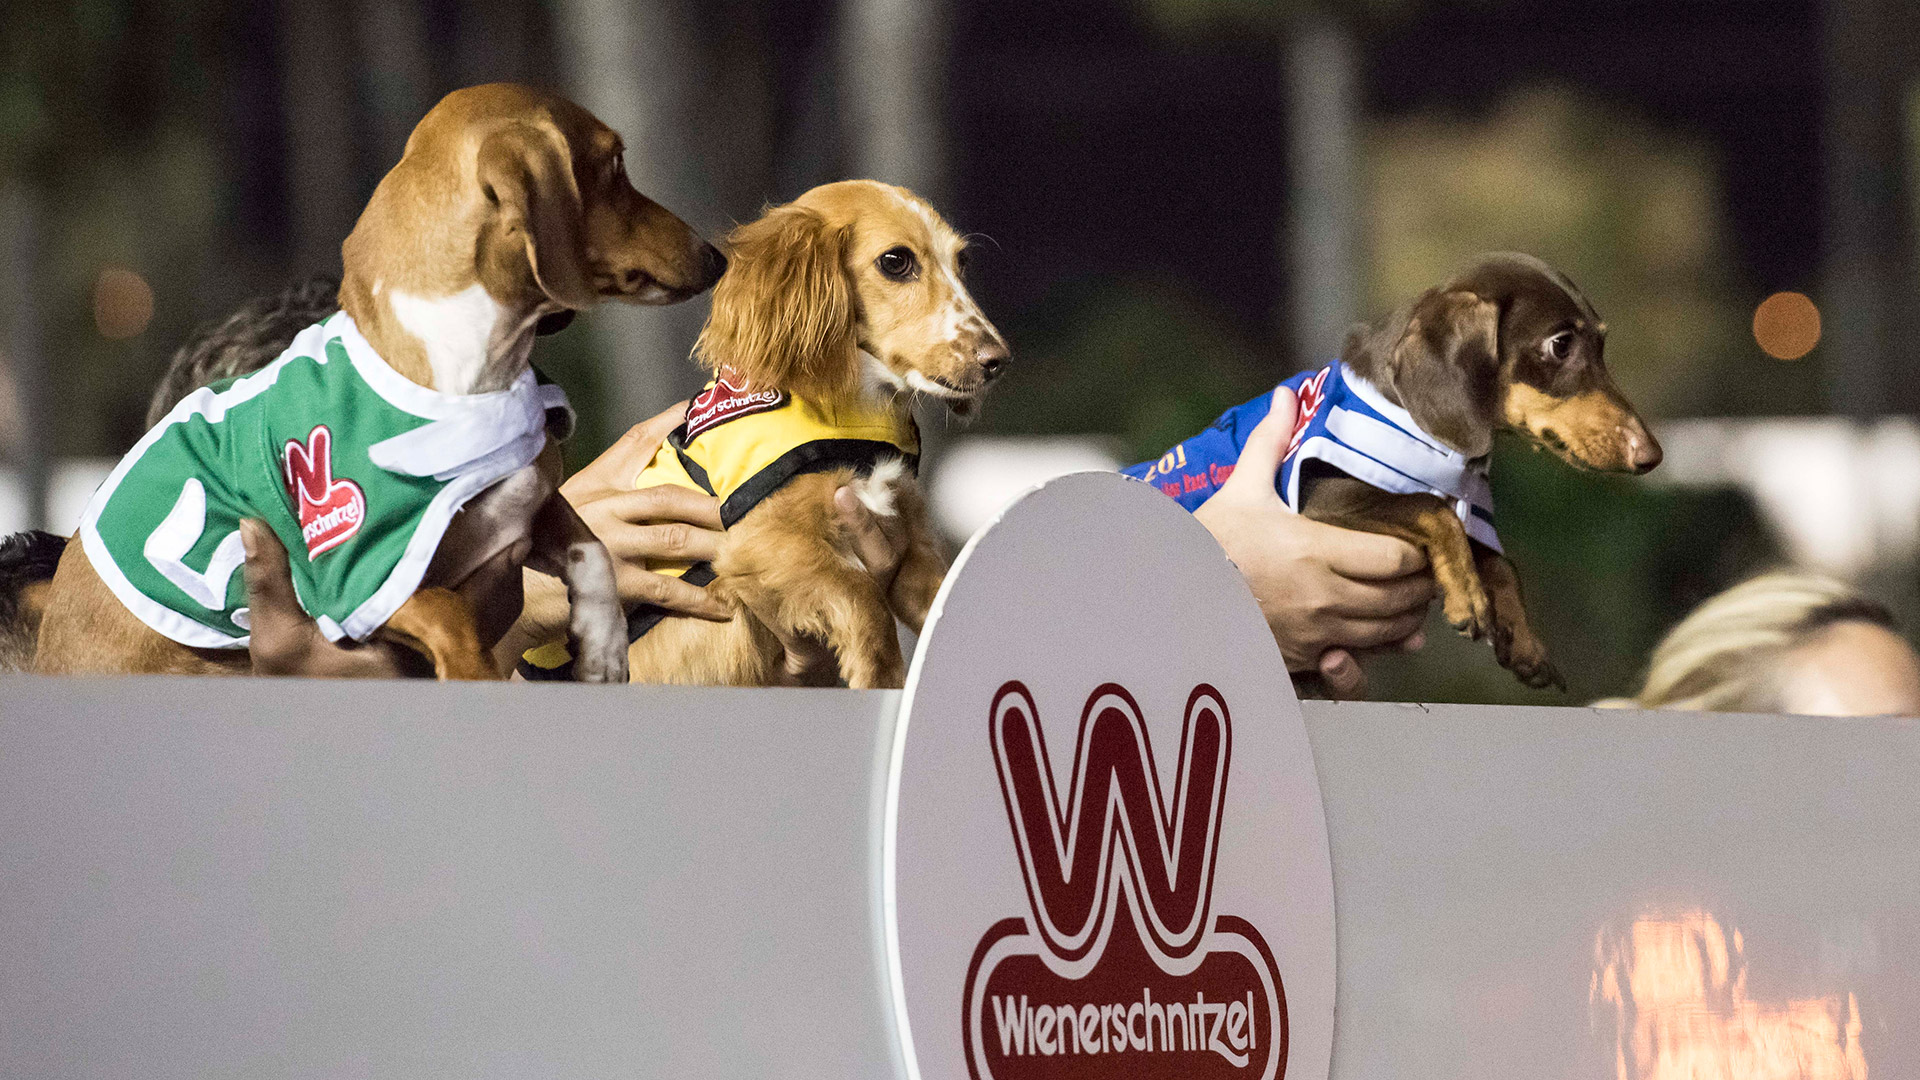 Dachshunds being held up by their owners behind a Wienerschnitzel sign.